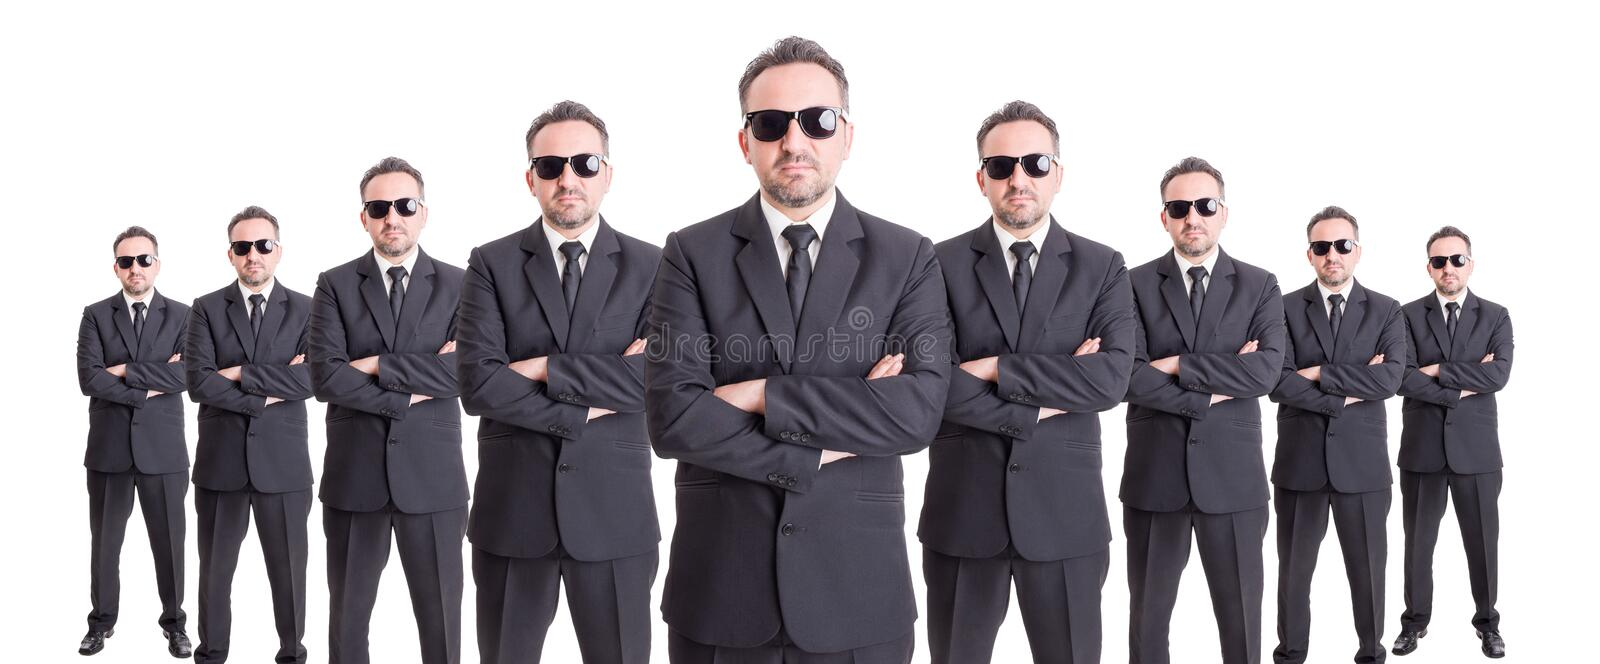 Organized group of business people. Standing with confidence on wide image royalty free stock image